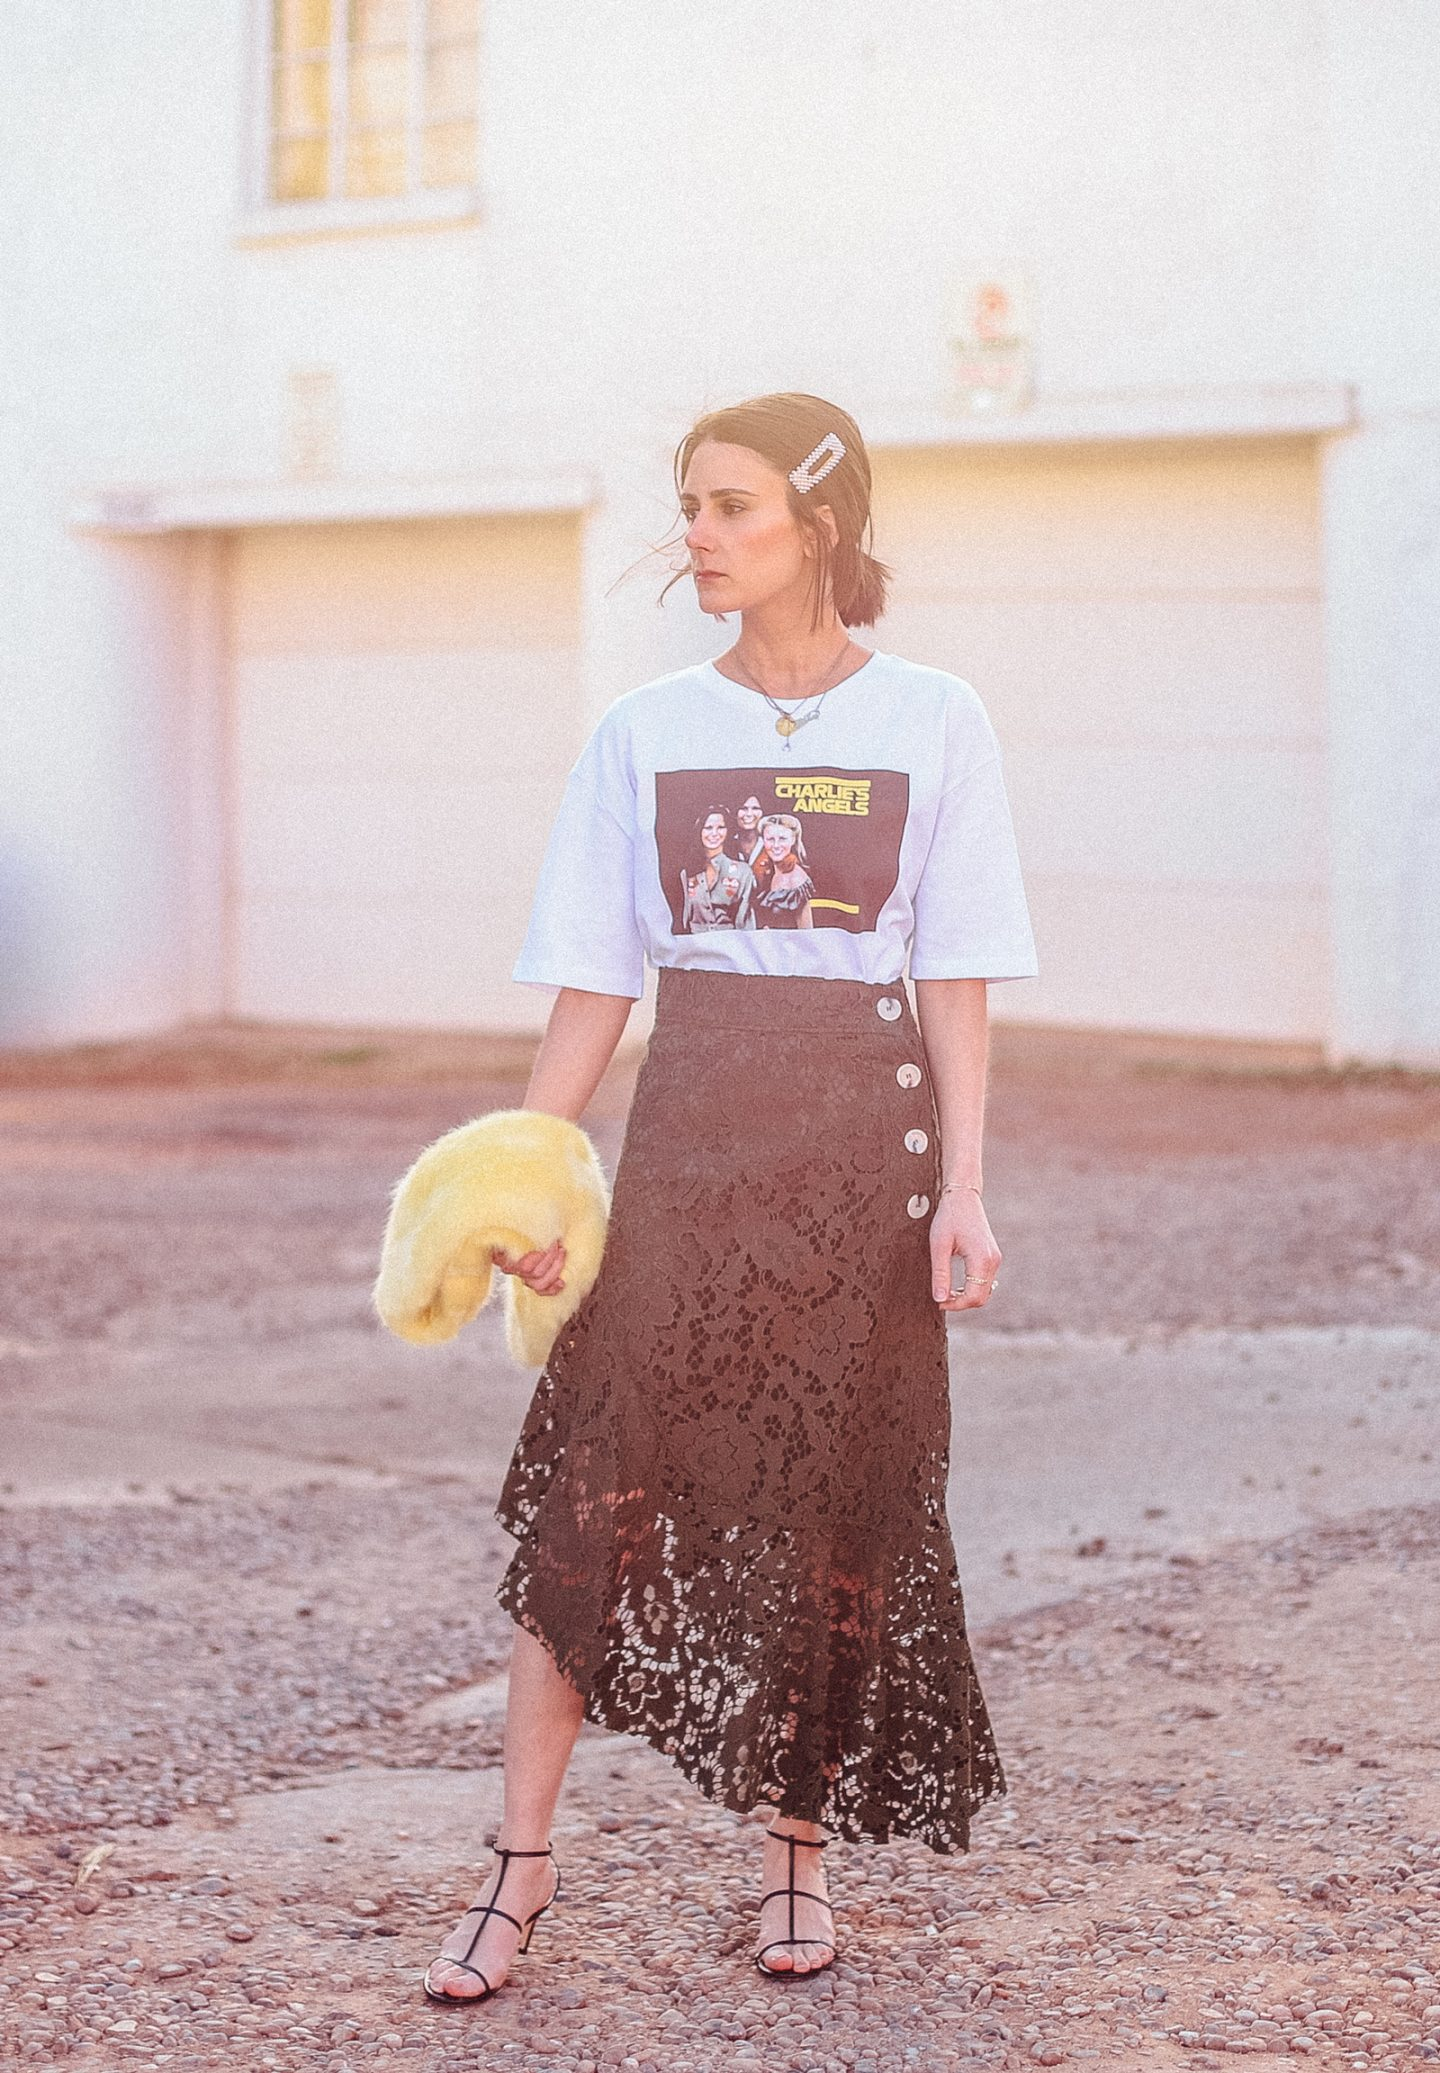 I am styling two different graphic tees in unexpected ways!